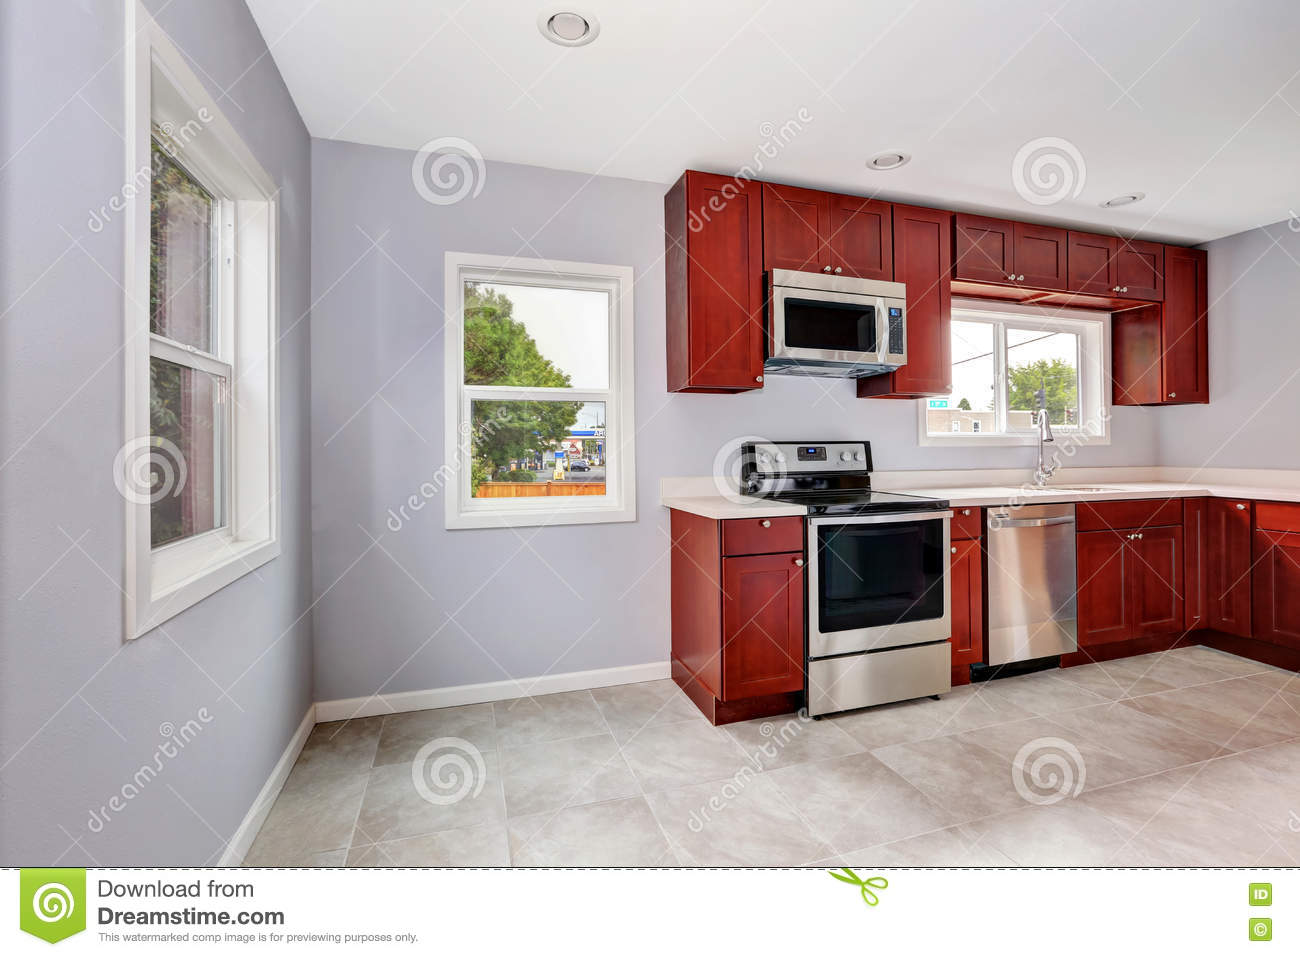 Royalty Free Stock Photo. Download Interior Of Lavender Kitchen With  Burgundy ...